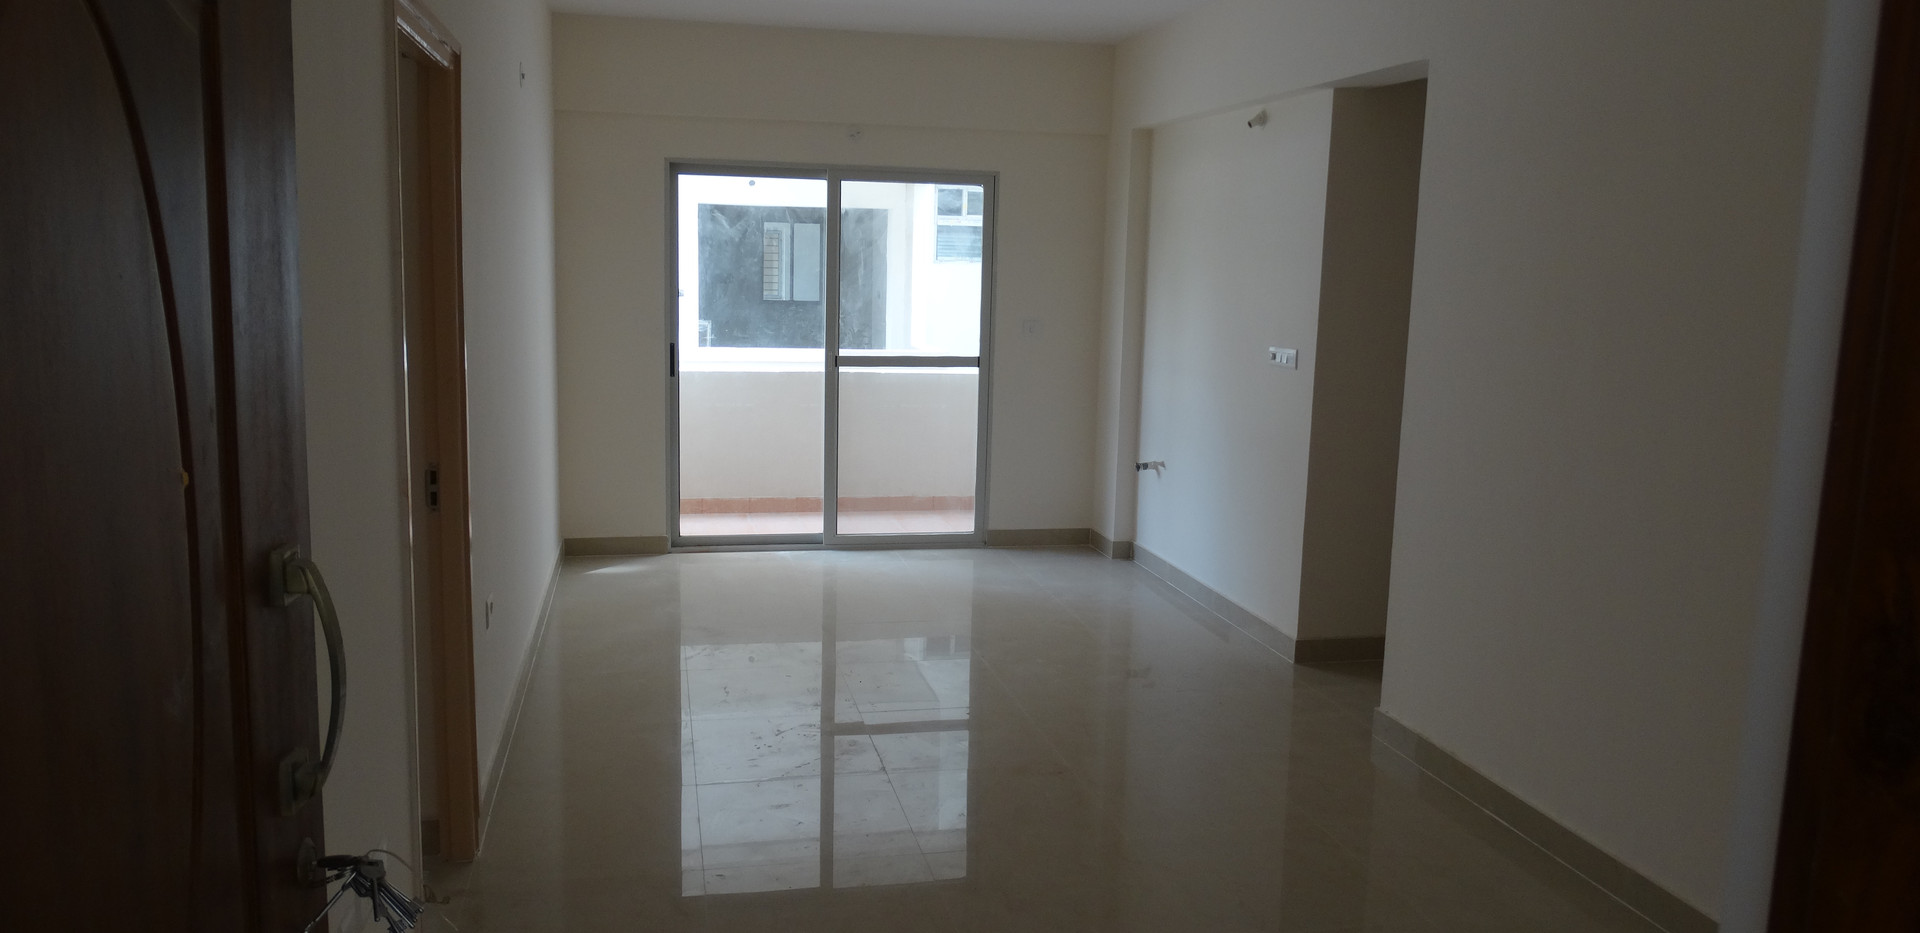 3BHK Living Area.JPG